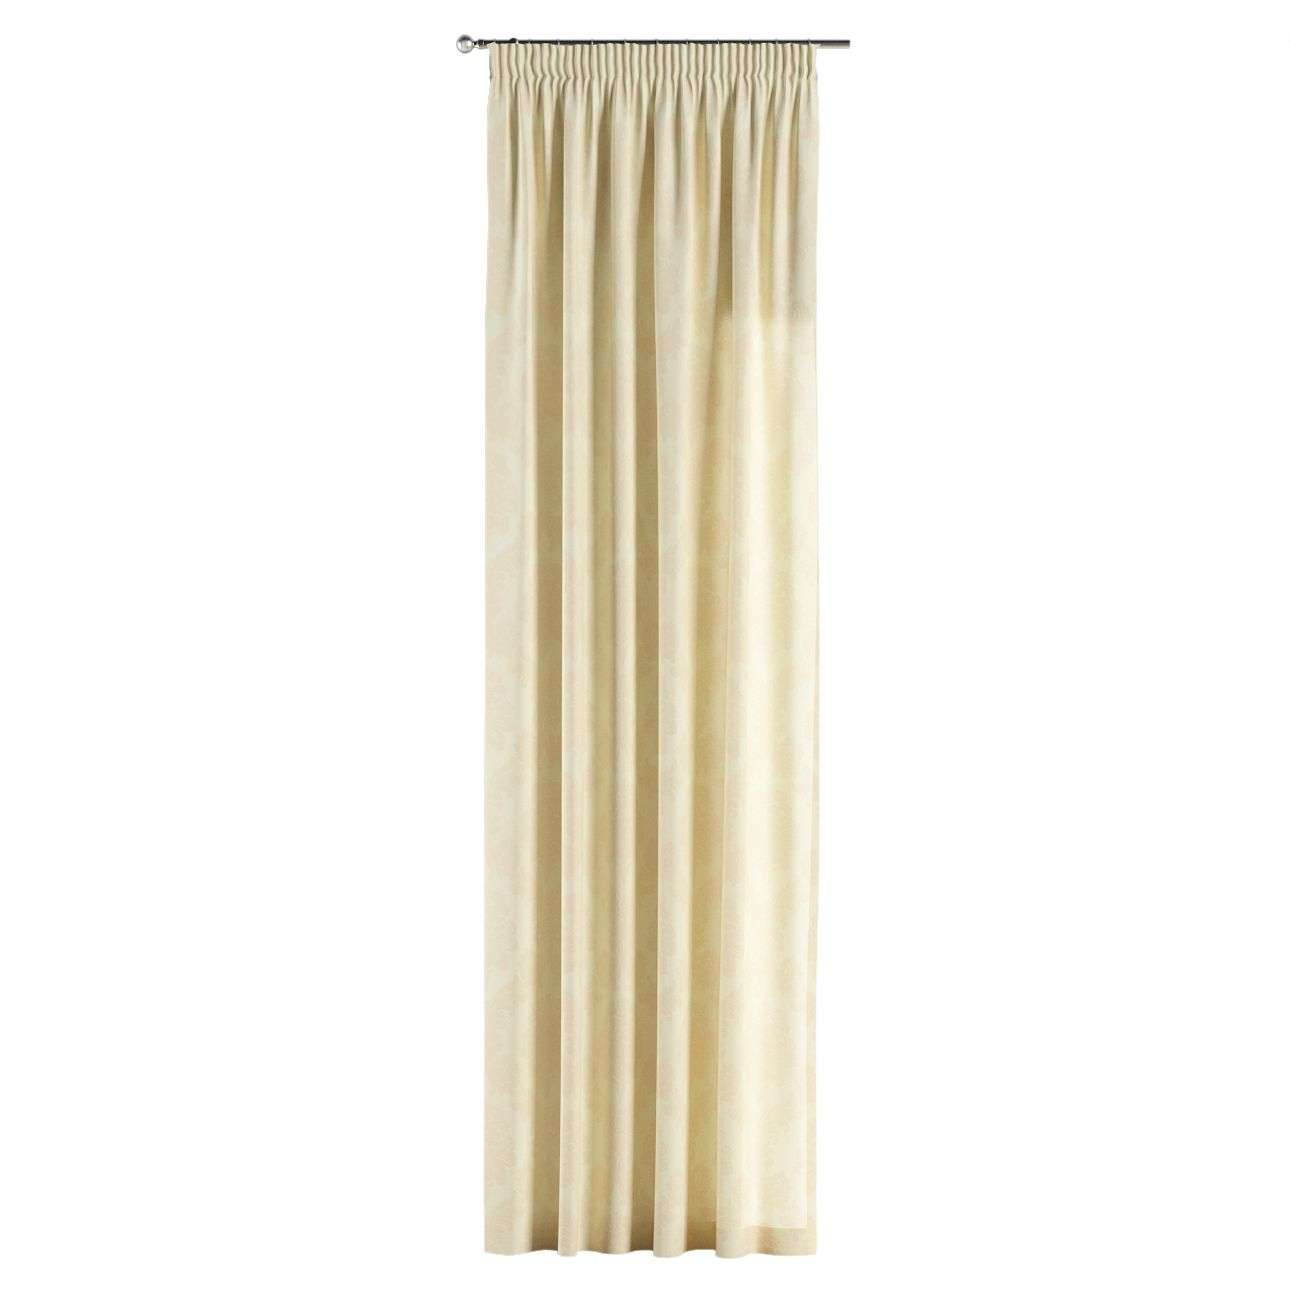 Pencil pleat curtains 130 x 260 cm (51 x 102 inch) in collection Damasco, fabric: 613-01